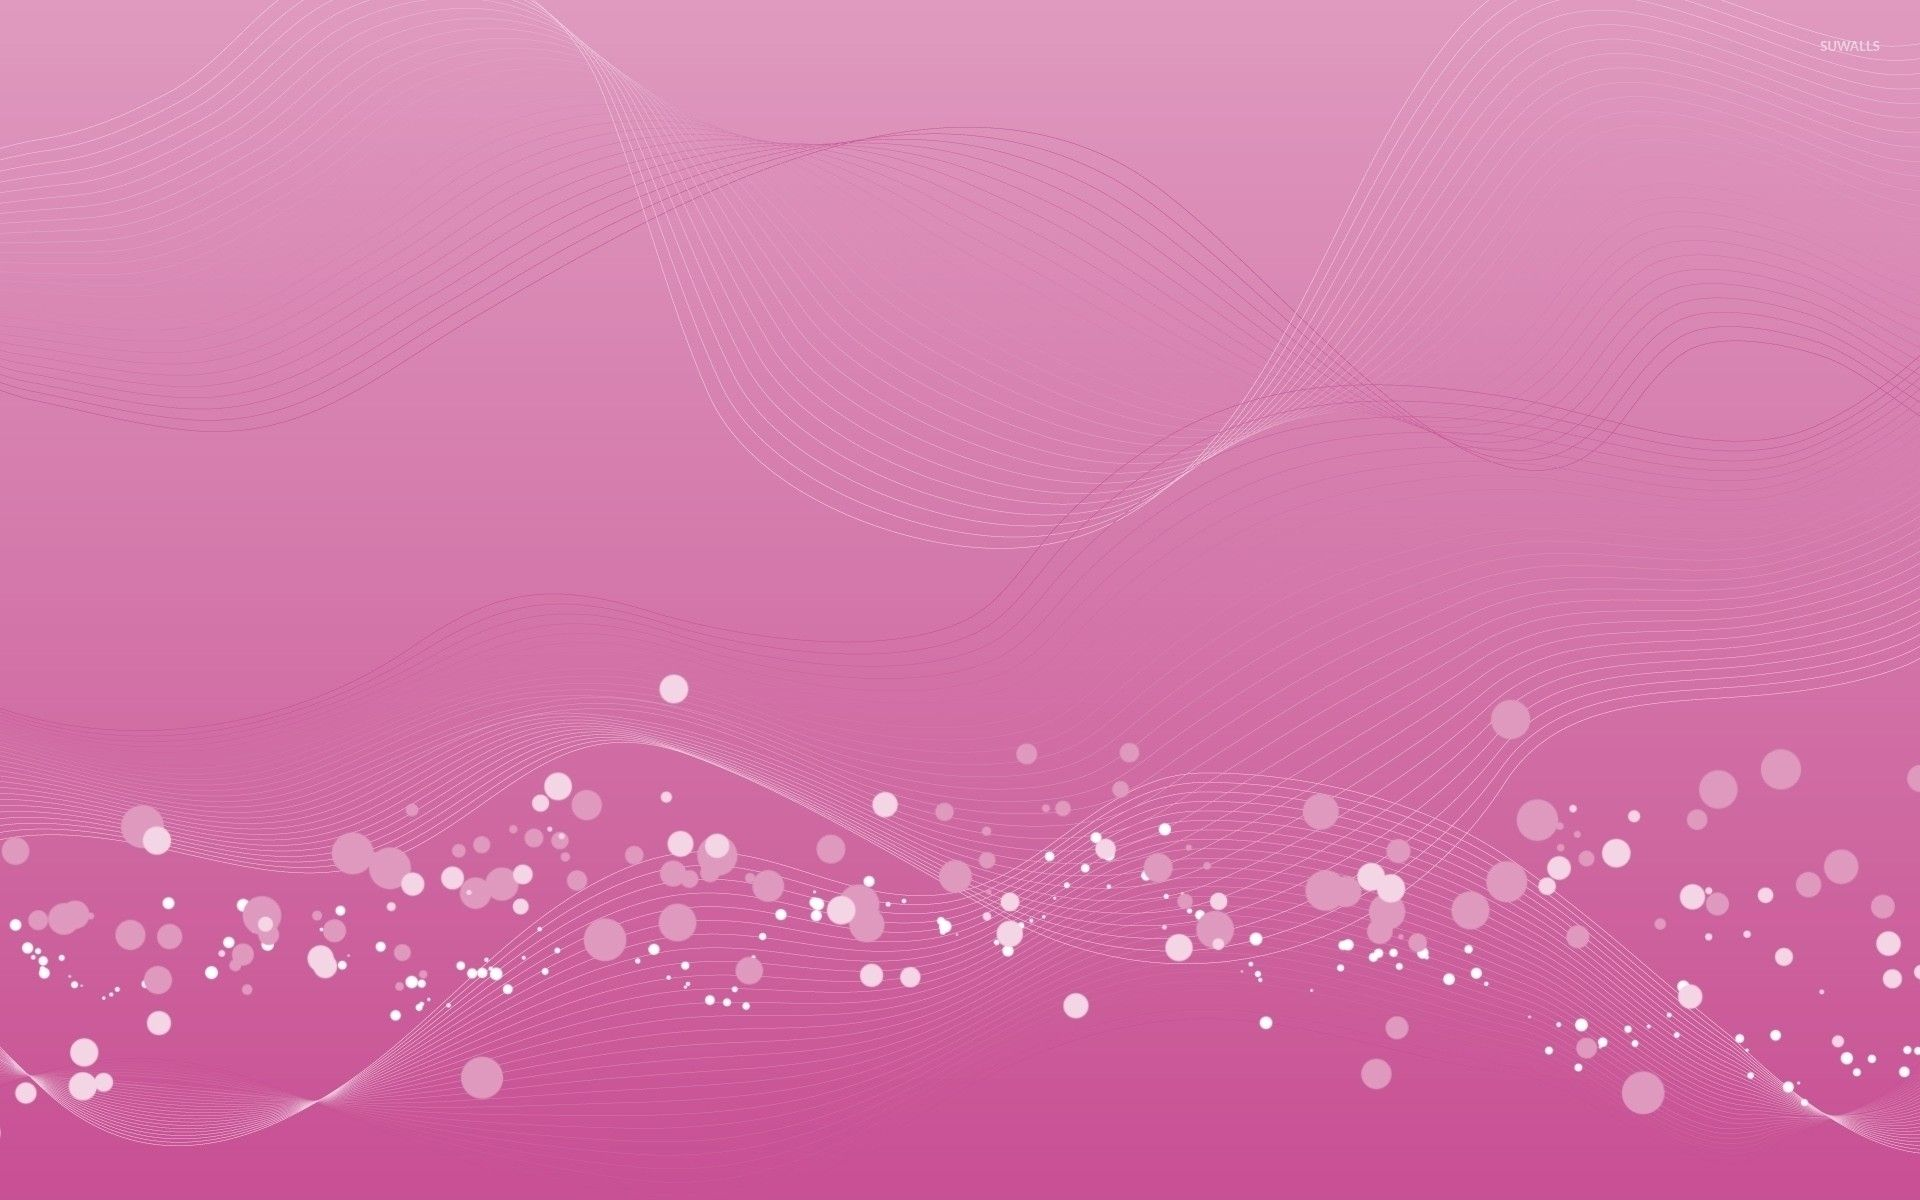 Pink Bubbles Wallpapers Top Free Pink Bubbles Backgrounds